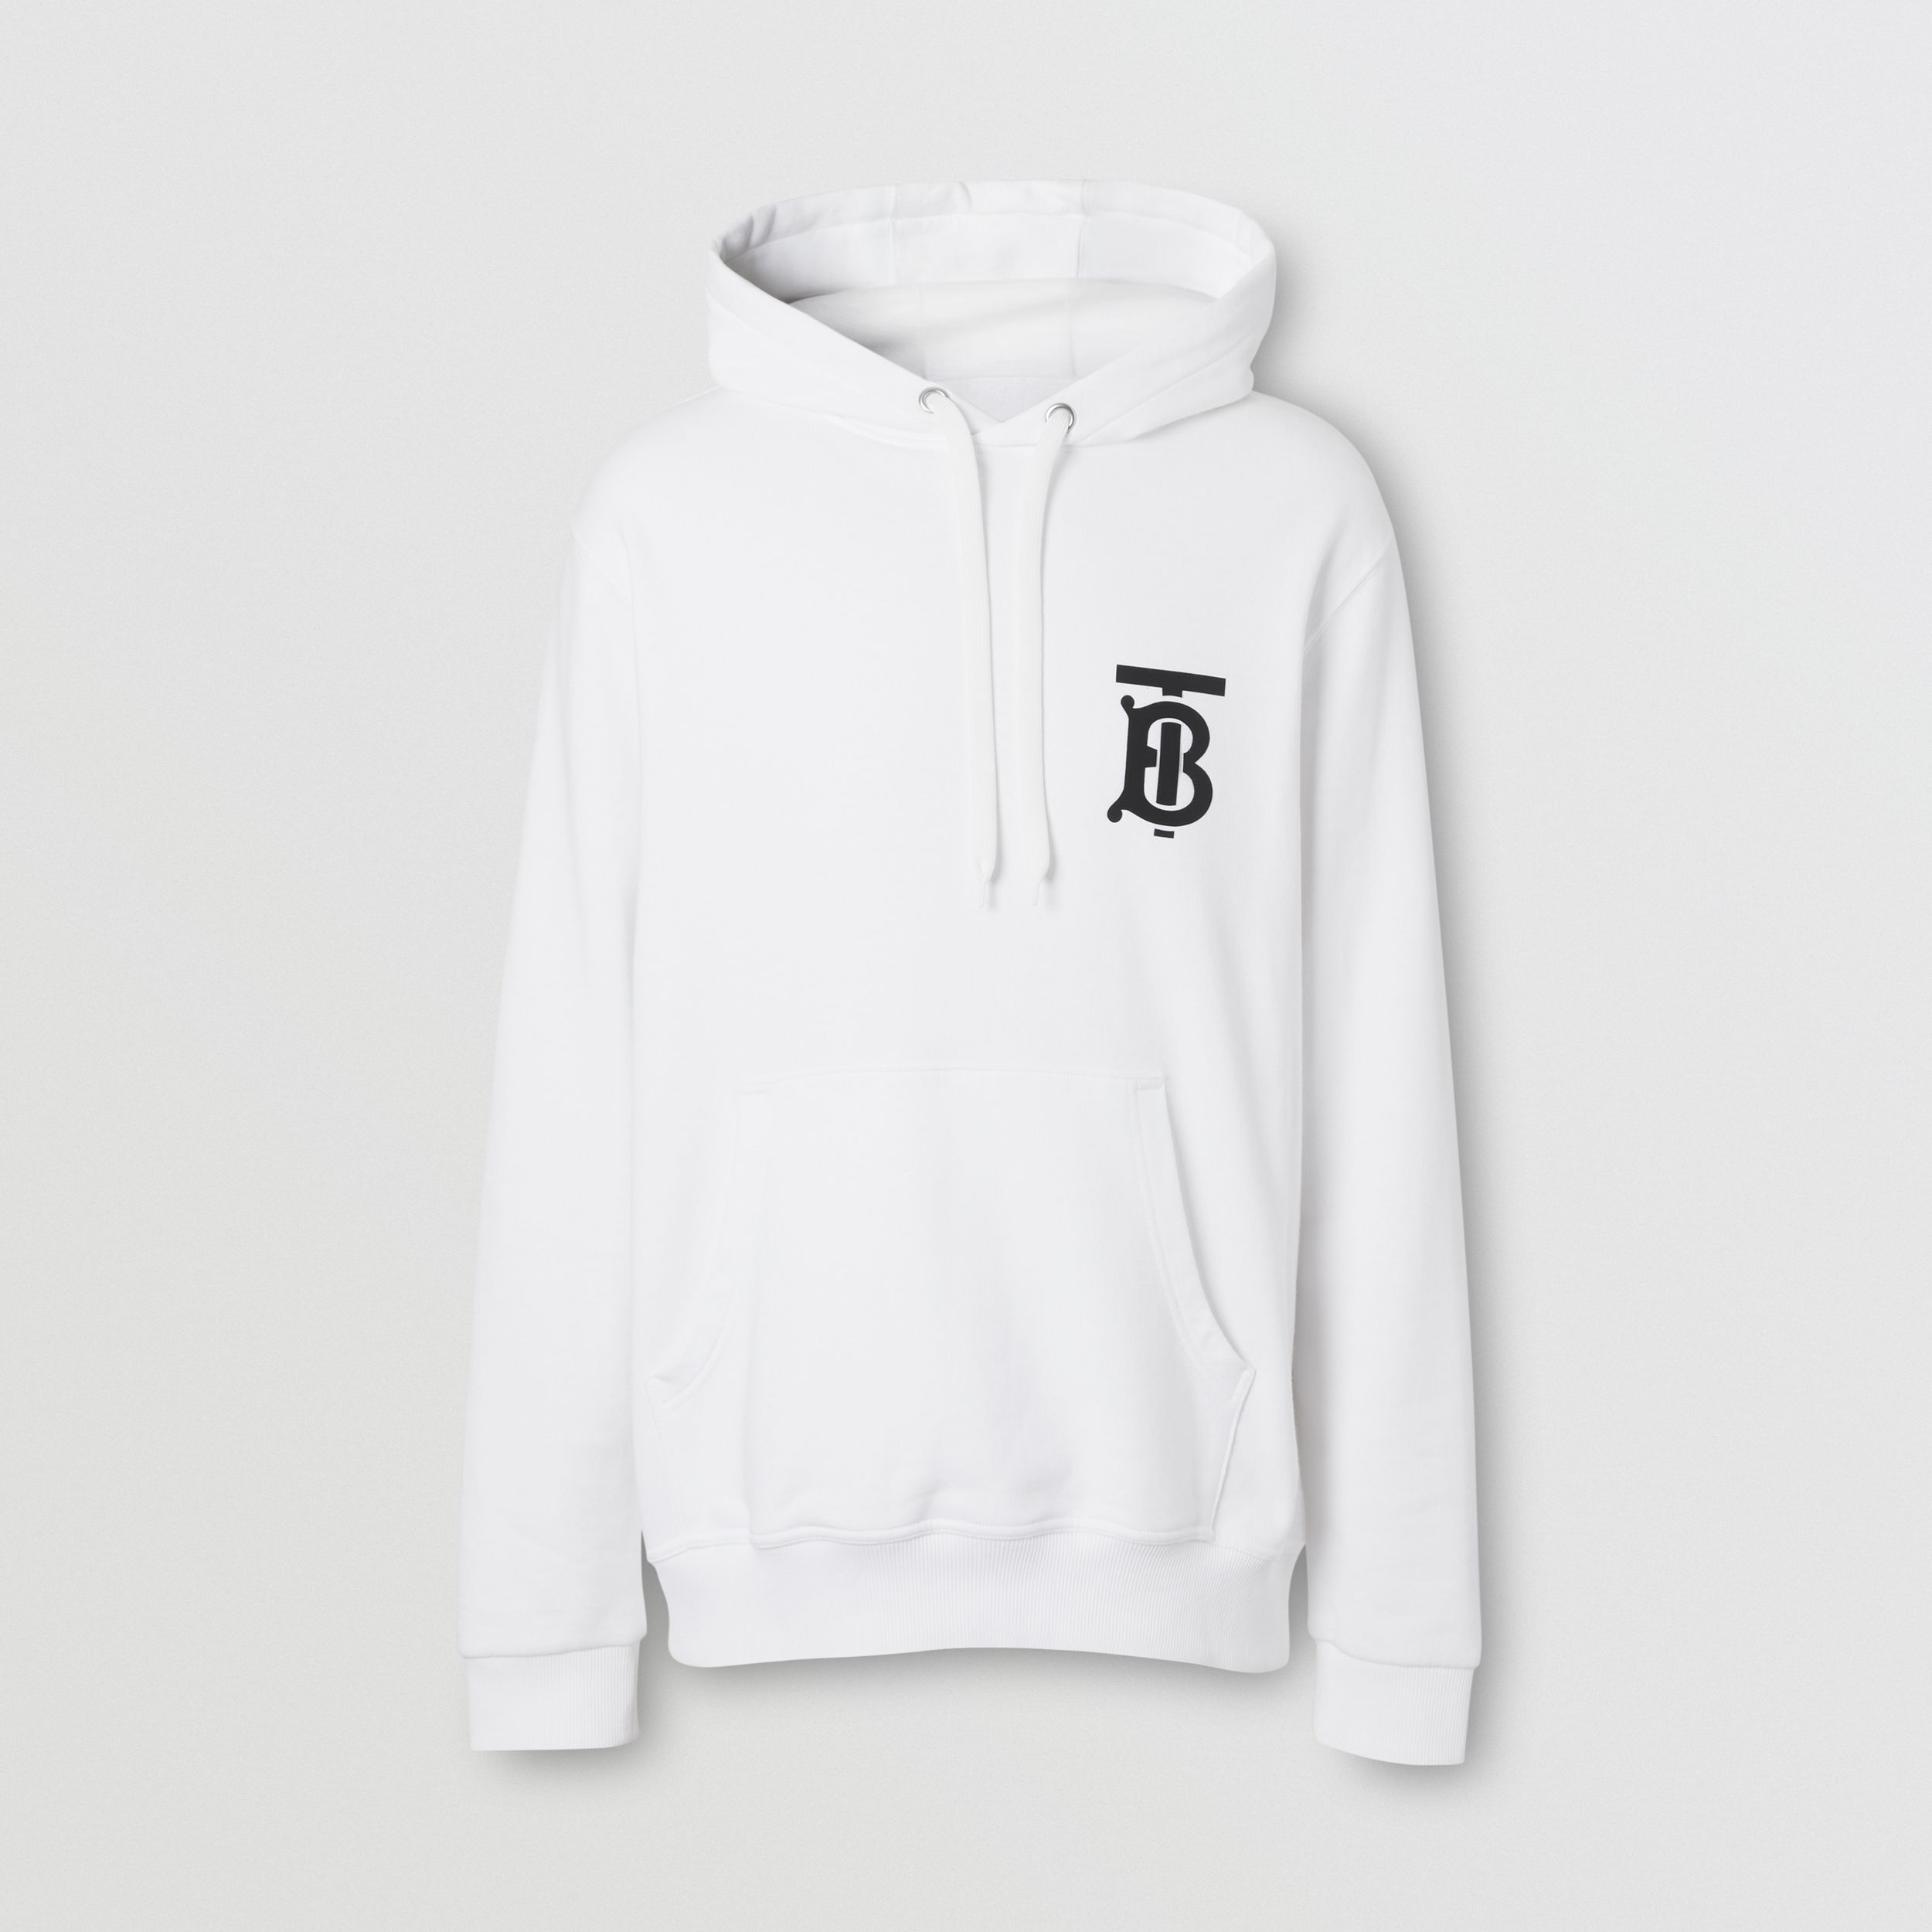 Monogram Motif Cotton Hoodie in White - Men | Burberry Australia - 4